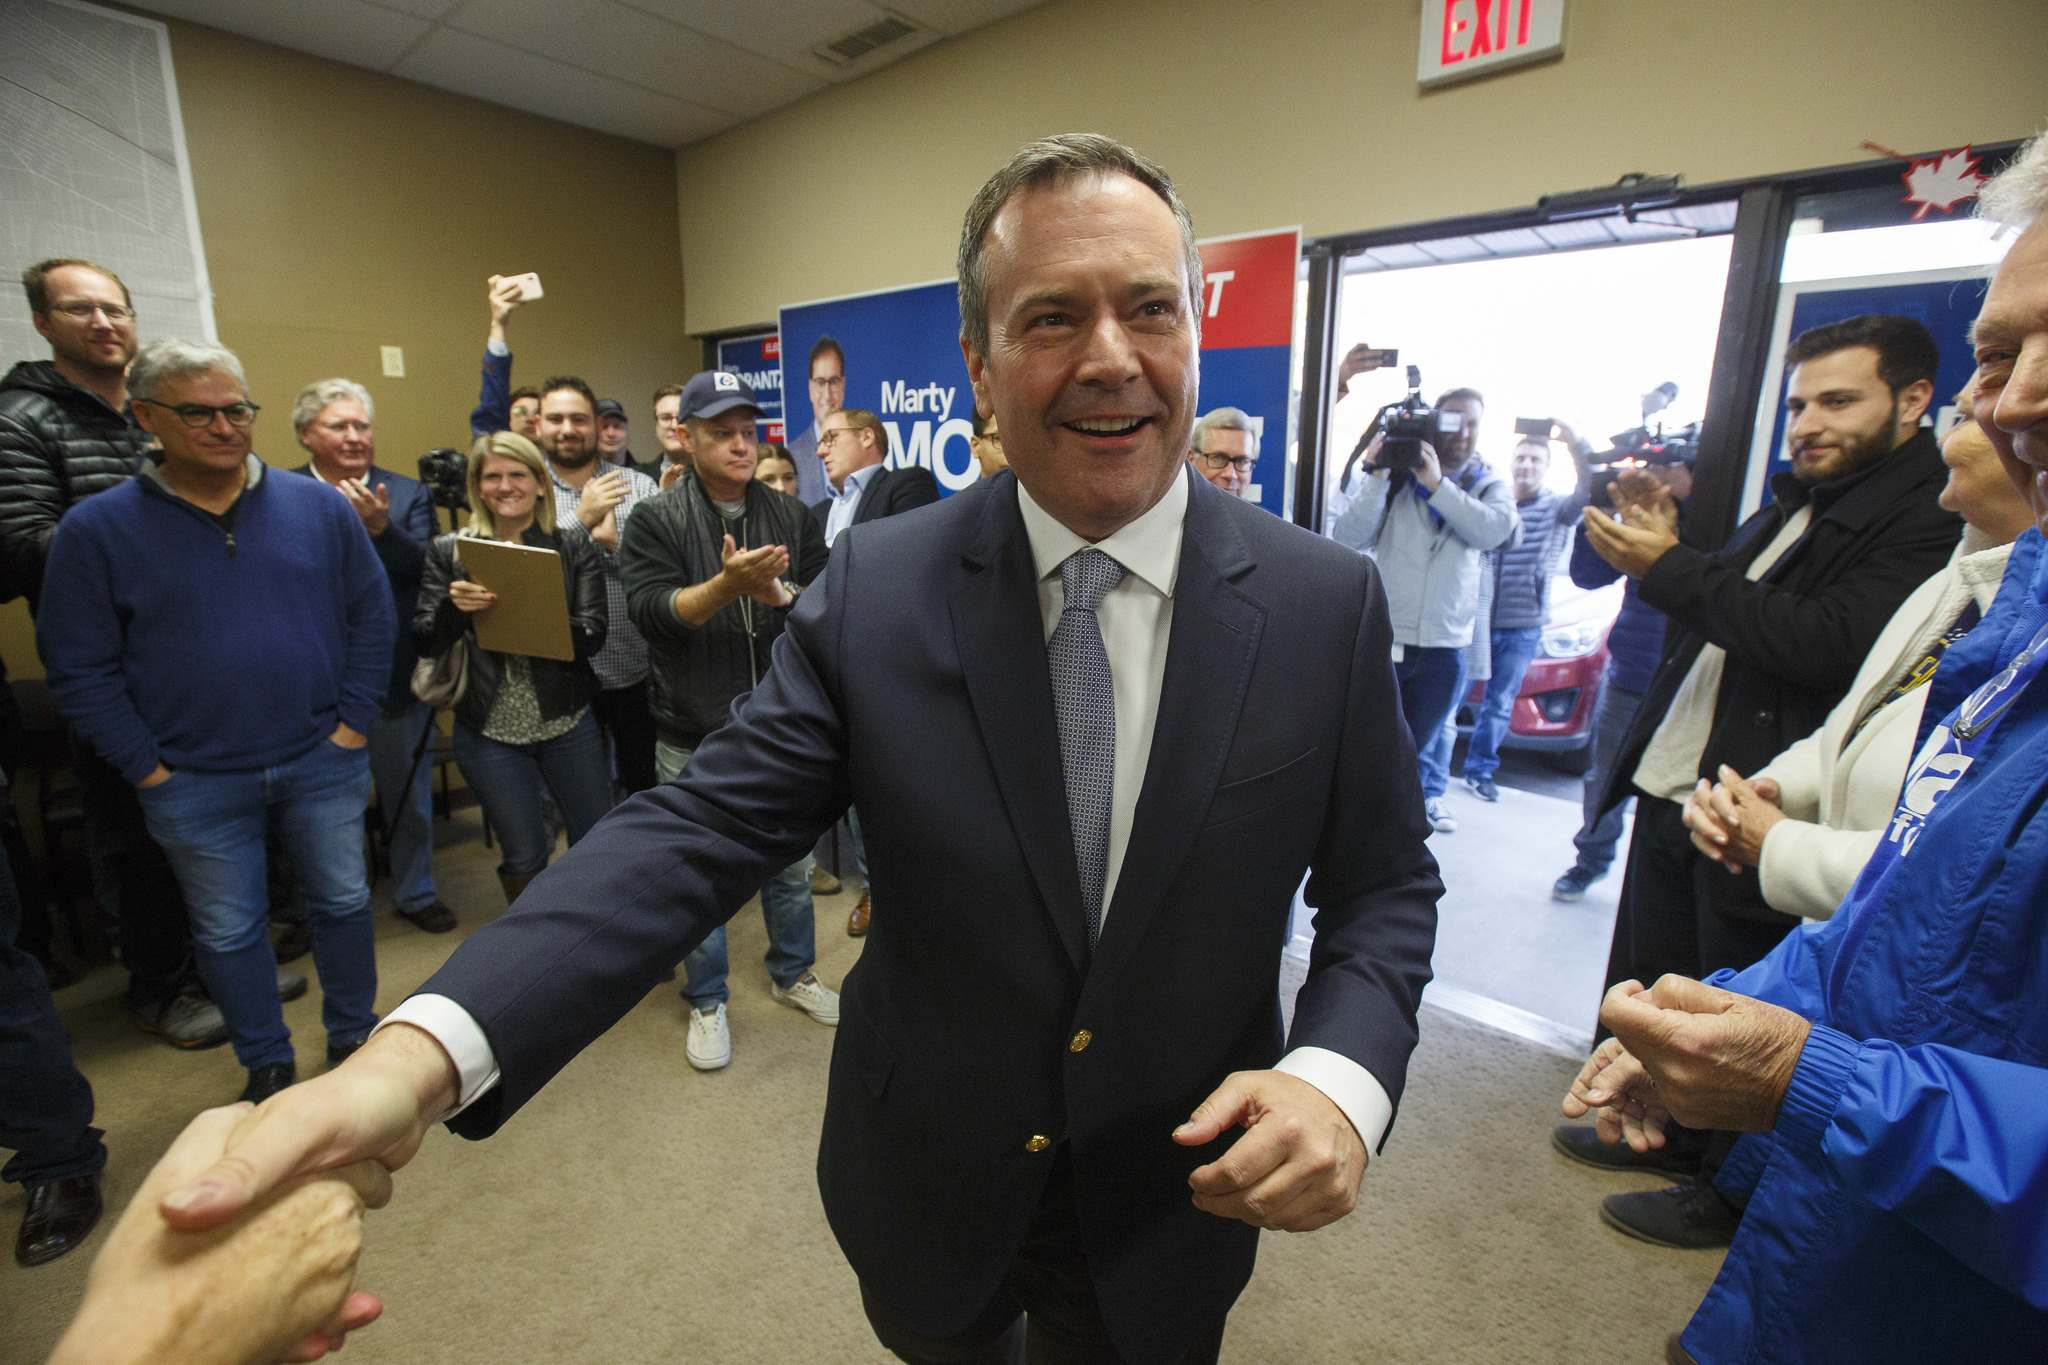 Kenney comes to city to stump for Conservative candidates